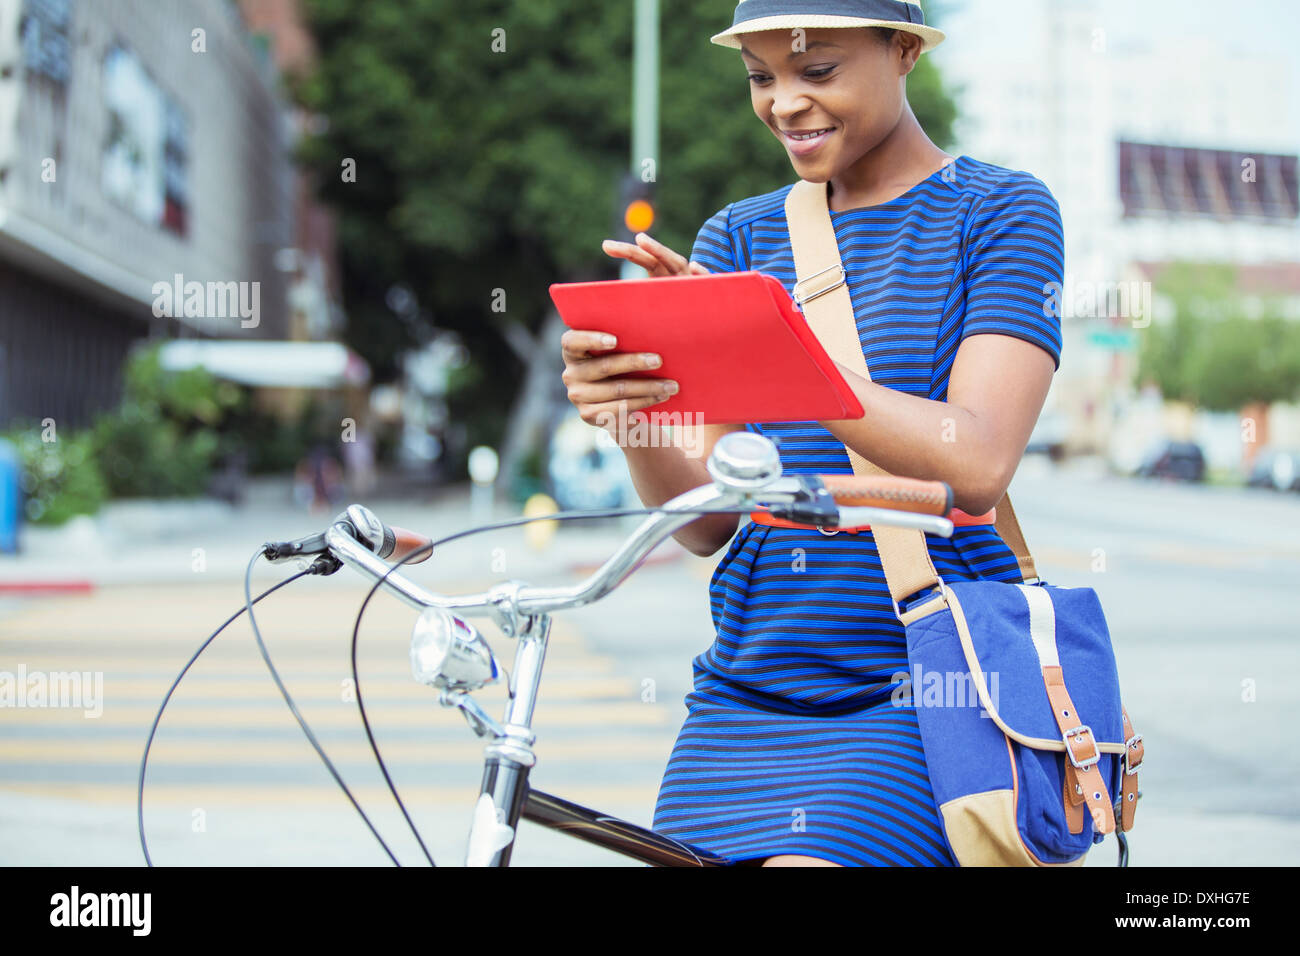 Casual businesswoman using digital tablet on bicycle on urban street - Stock Image